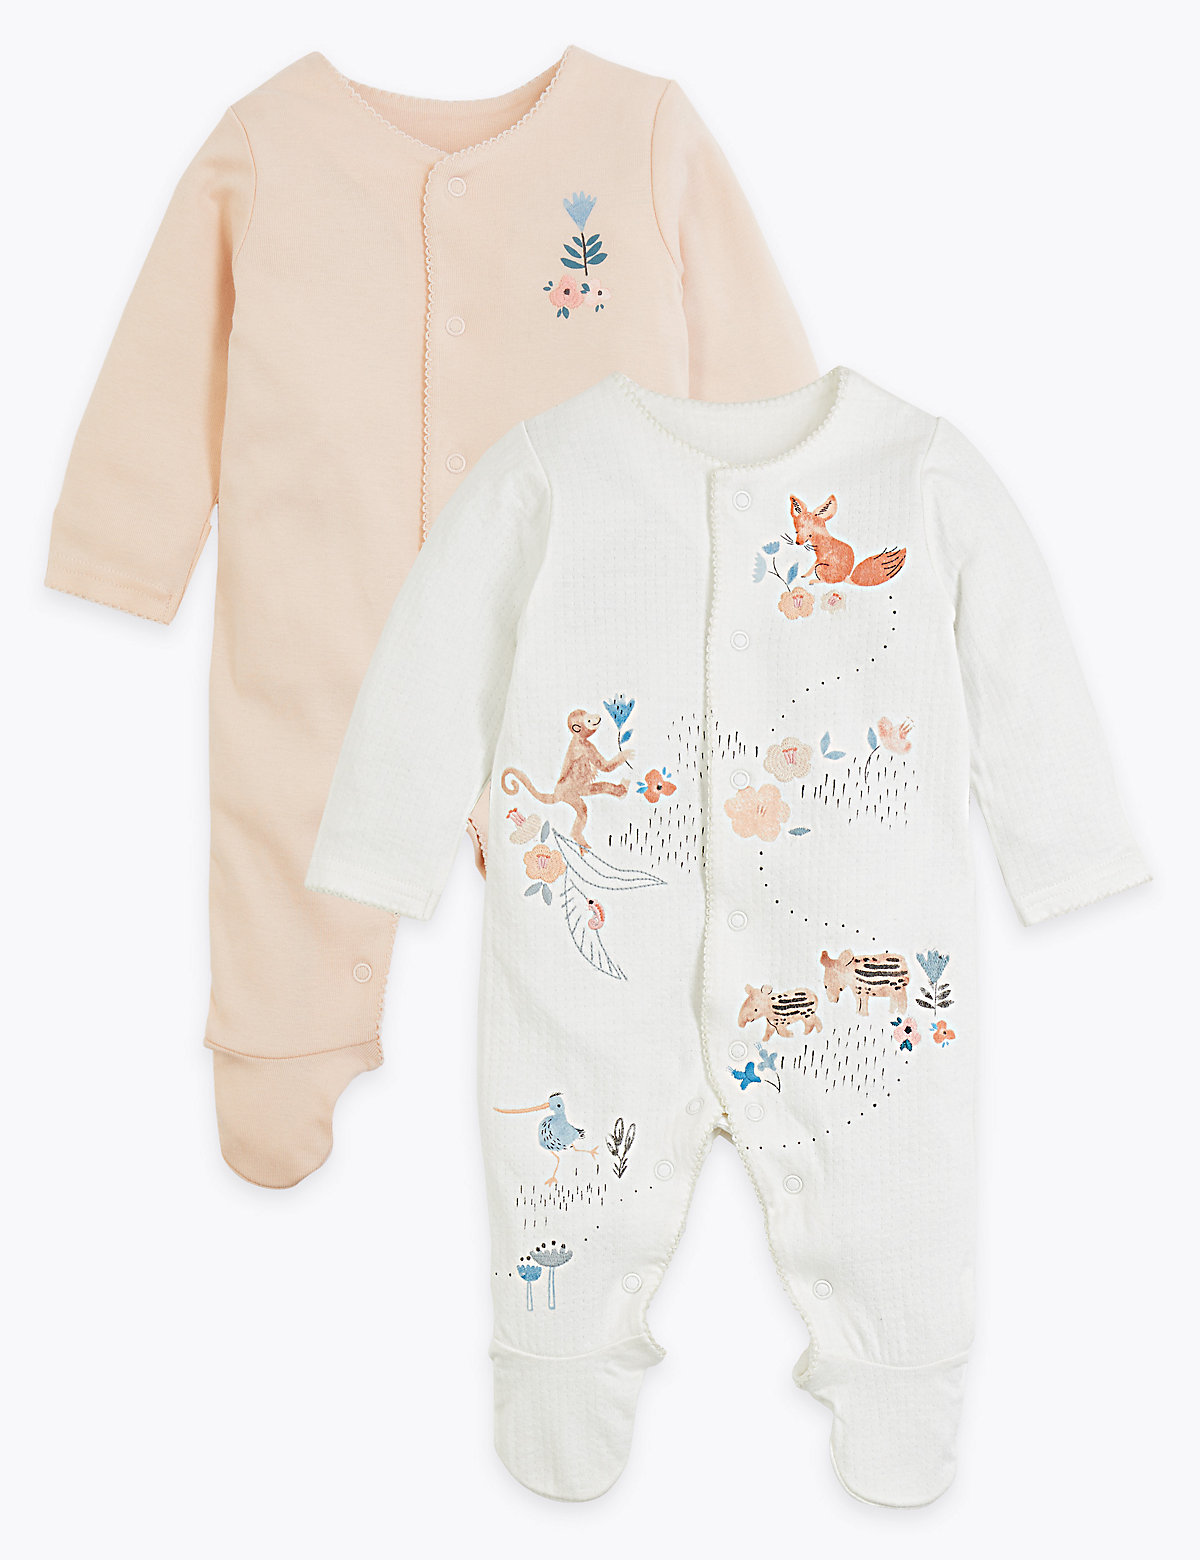 2 Pack Pure Cotton Floral Sleepsuits (7lbs-3 Yrs)